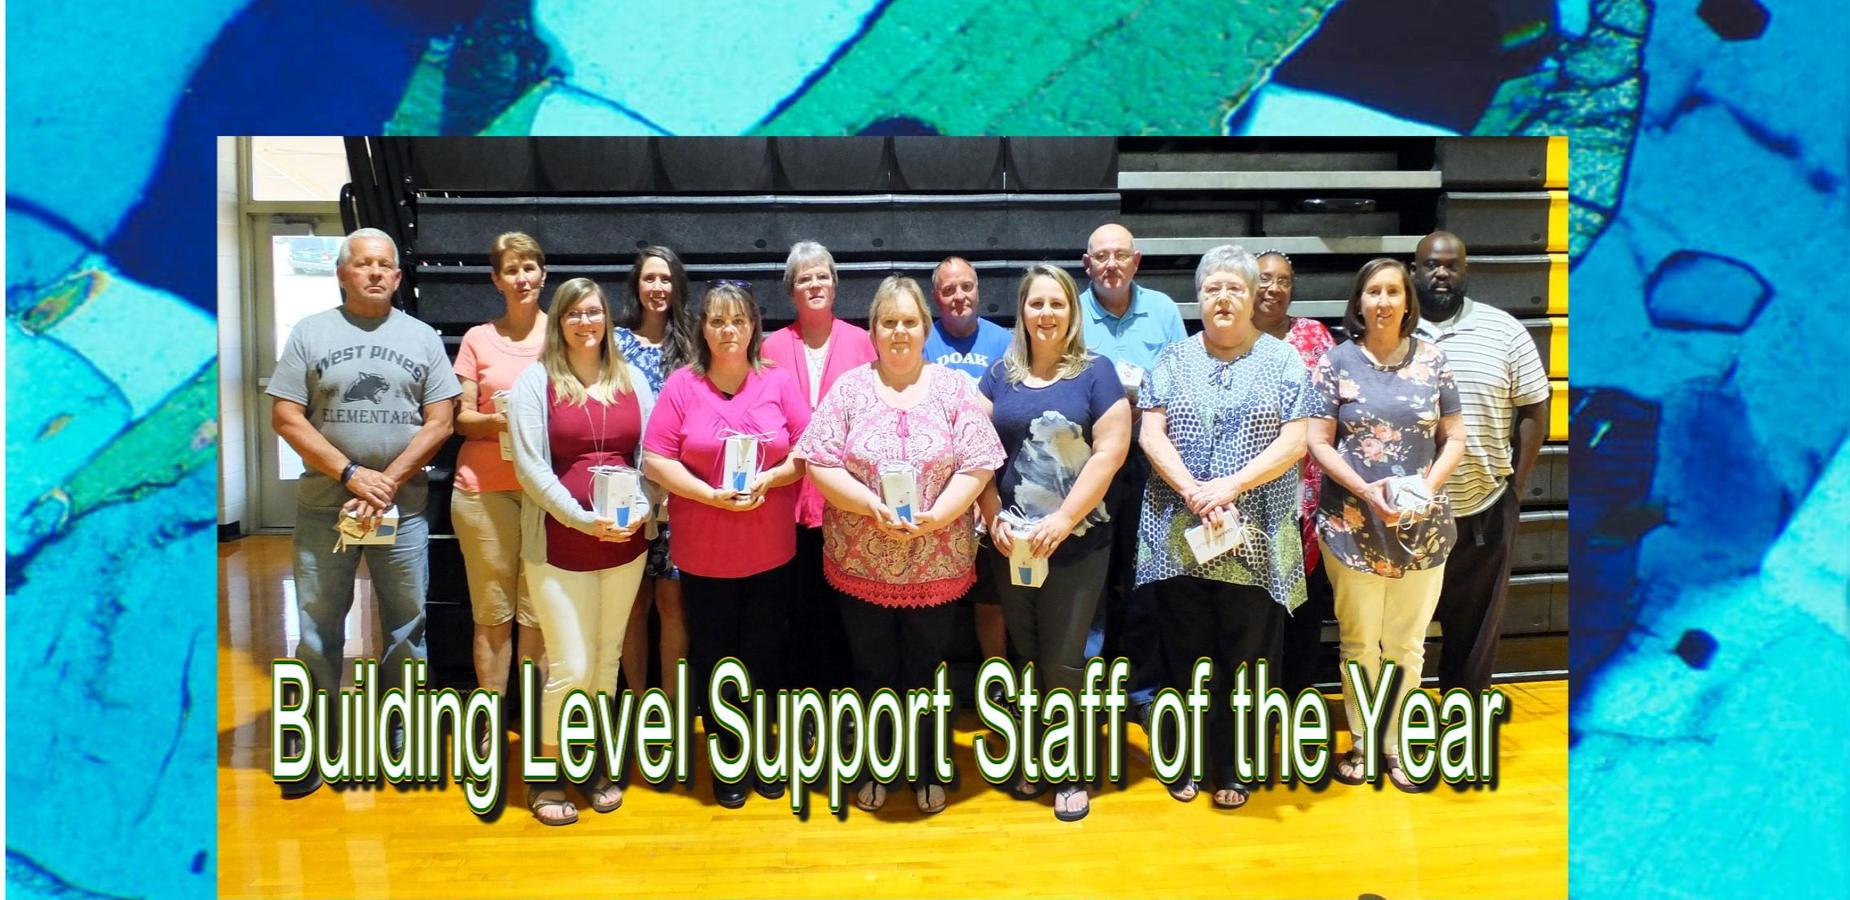 Building Level Support Staff of the Year